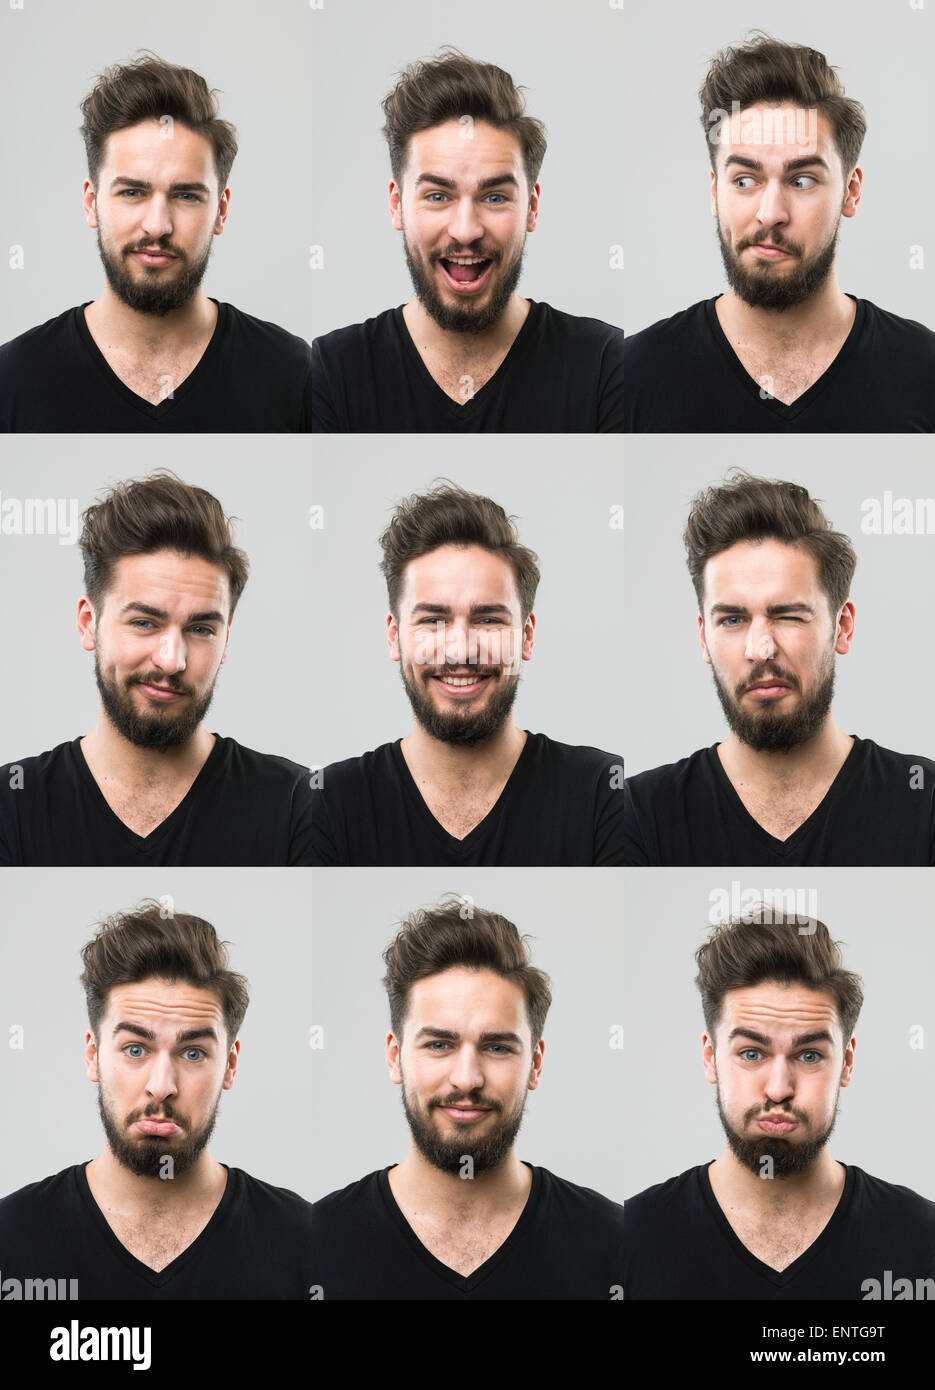 Are not Differences in facial expressions your business!